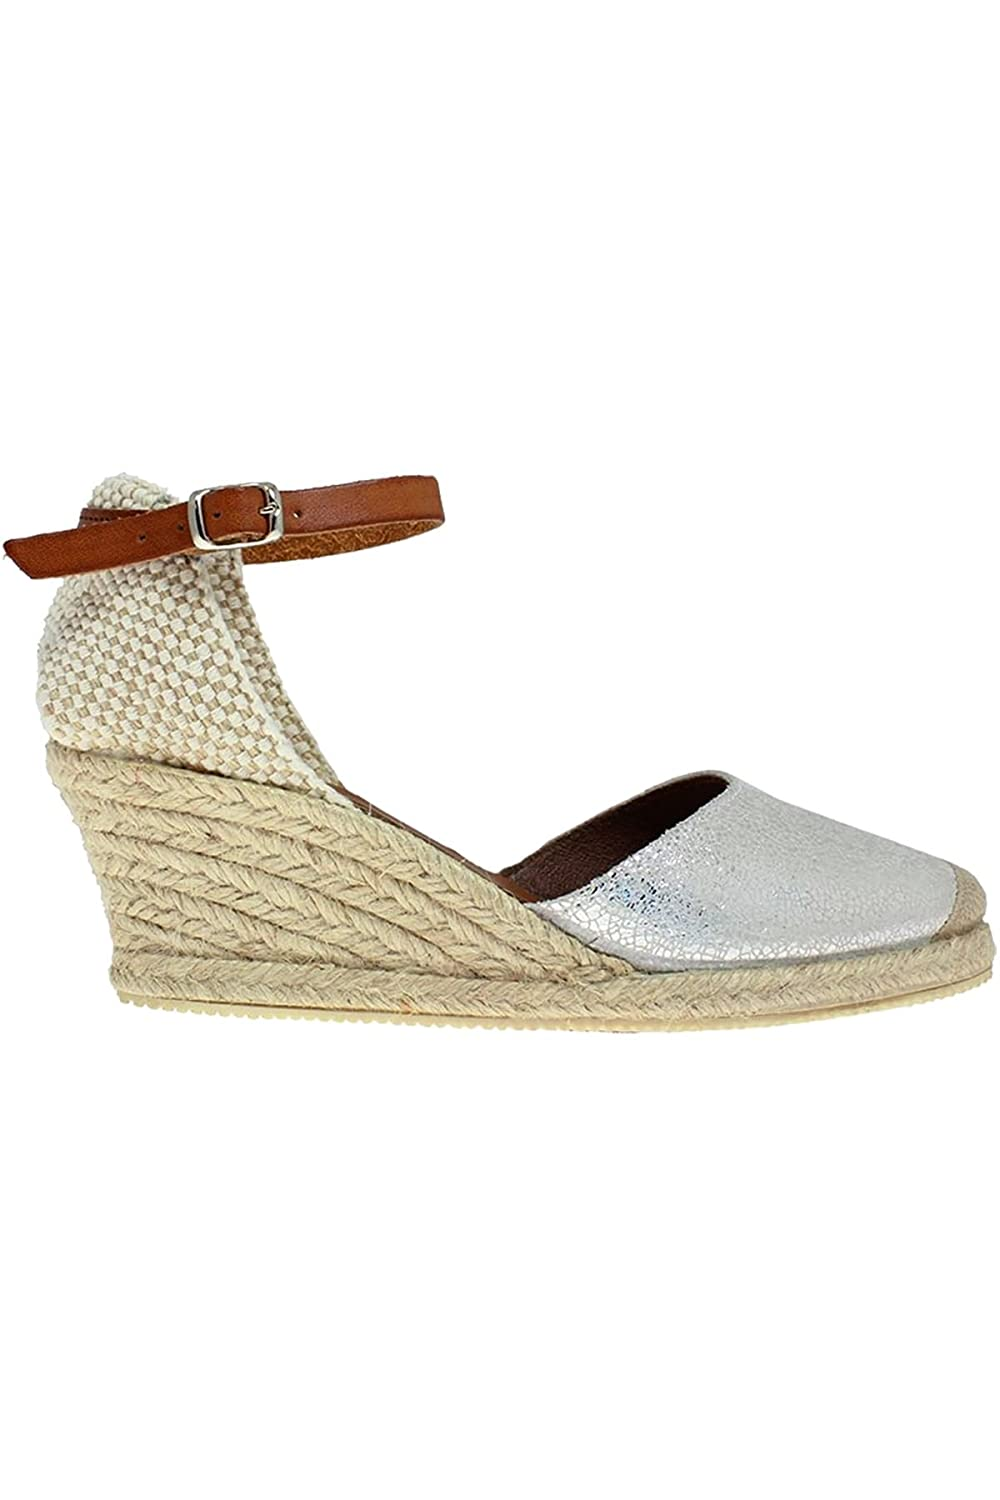 Sapphire Boutique by Sapphire JLN066 Antony Ladies Leather Metallic Ankle  Strap Comfortable Espadrille Wedges [Silver, UK 7]: Amazon.co.uk: Shoes &  Bags